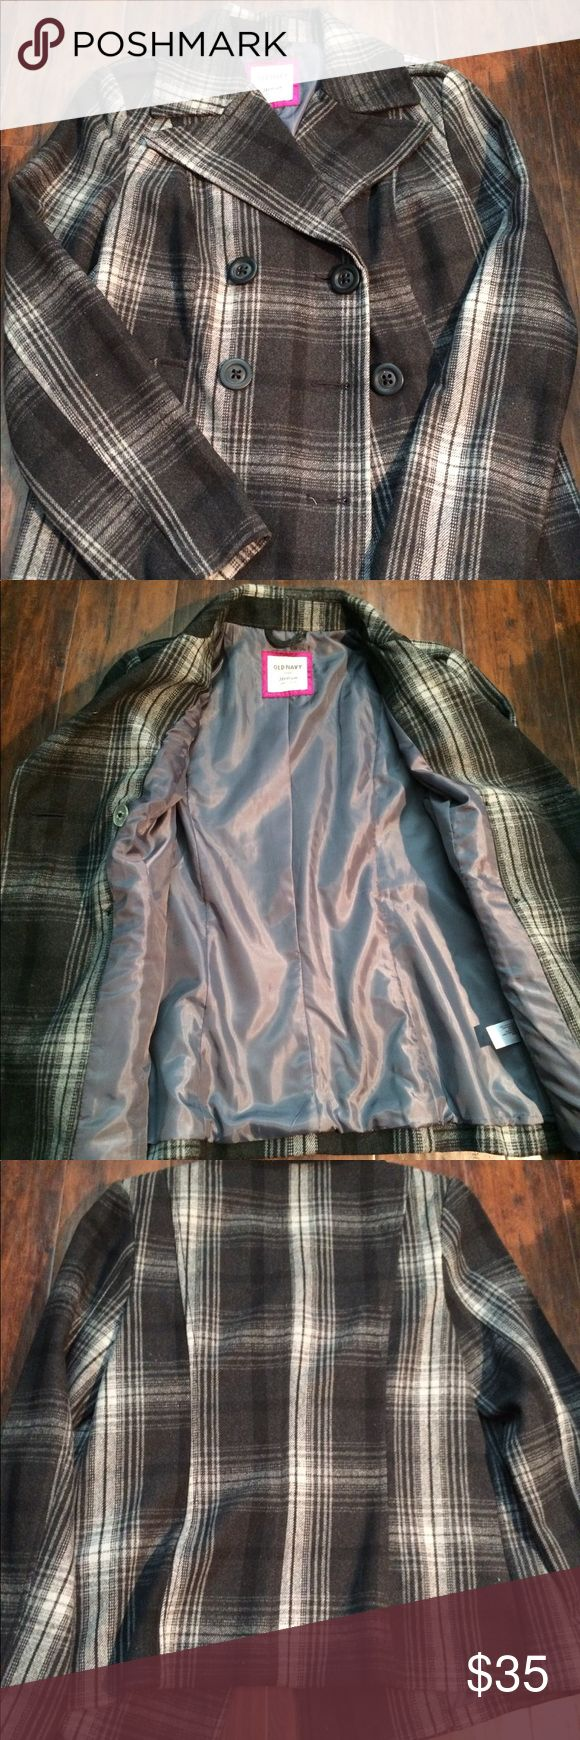 Plaid Pea Coat NWT Cute Old Navy Plaid Peacoat! Looks great dressed up or dressed down. Very versatile jacket! Old Navy Jackets & Coats Pea Coats